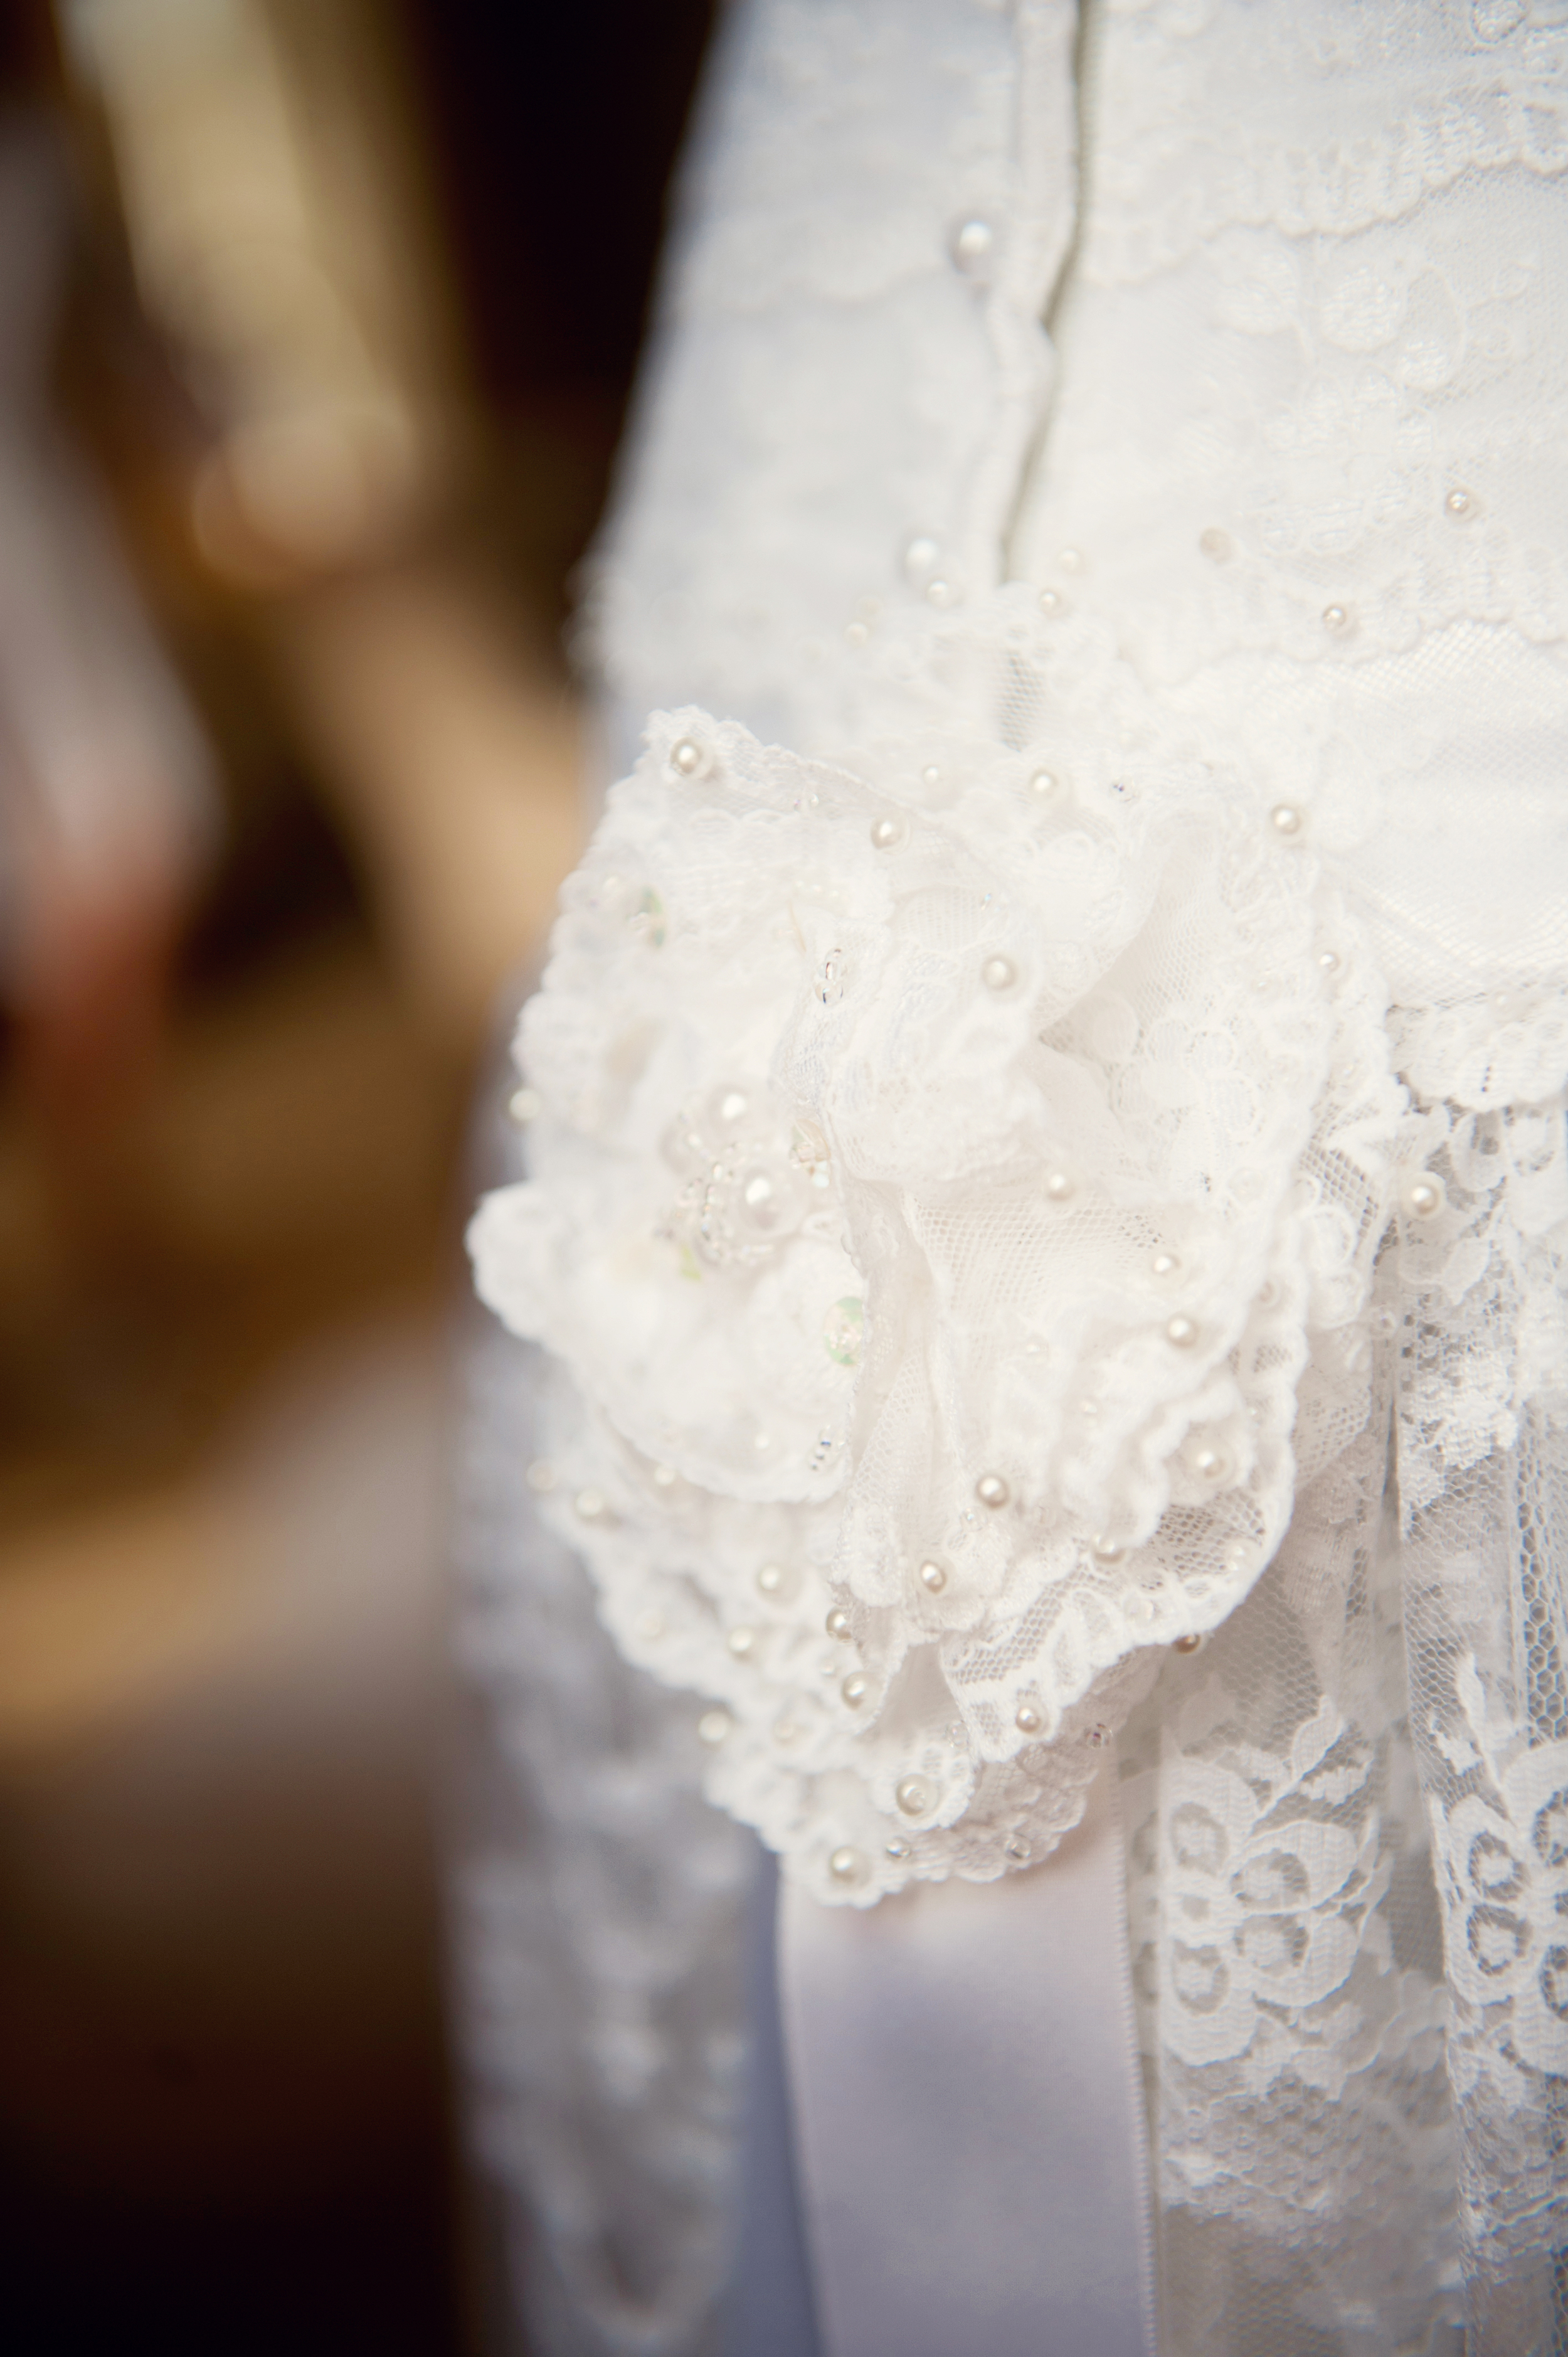 Vintage dress from Bella Bleu, Cork. T  op / corset was crafted by Nell McCarthy, Cormac's grandmother. -Photography:Weddings by KARA  © - Wedding Location: Kilshane House, Tipperary, Ireland